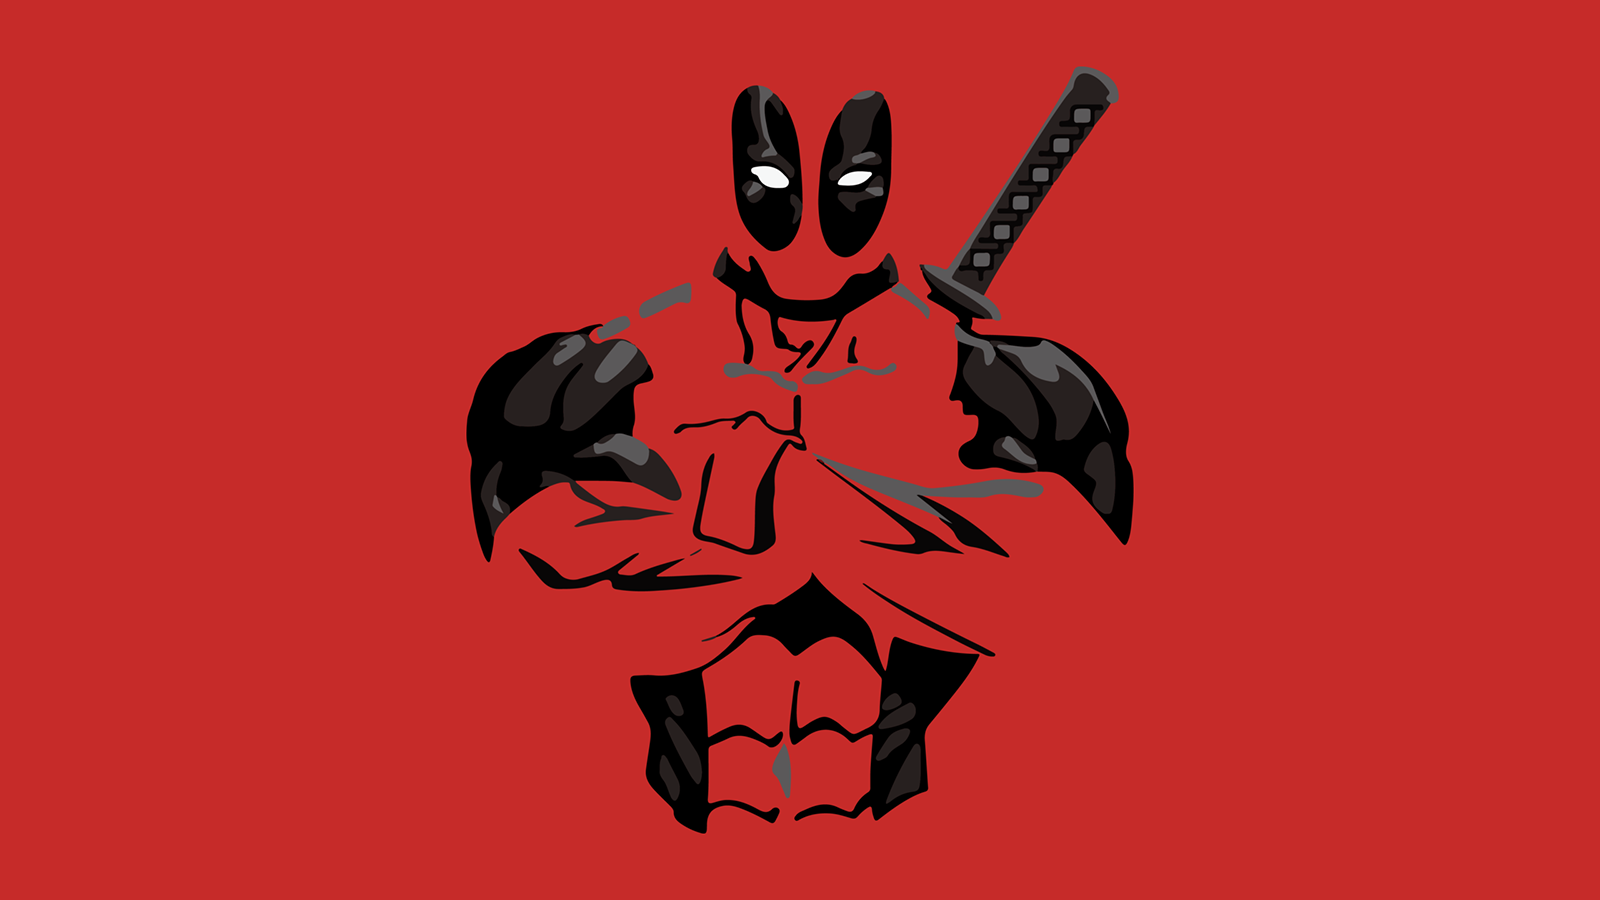 Deadpool clipart hd wallpapers. For iphone best of